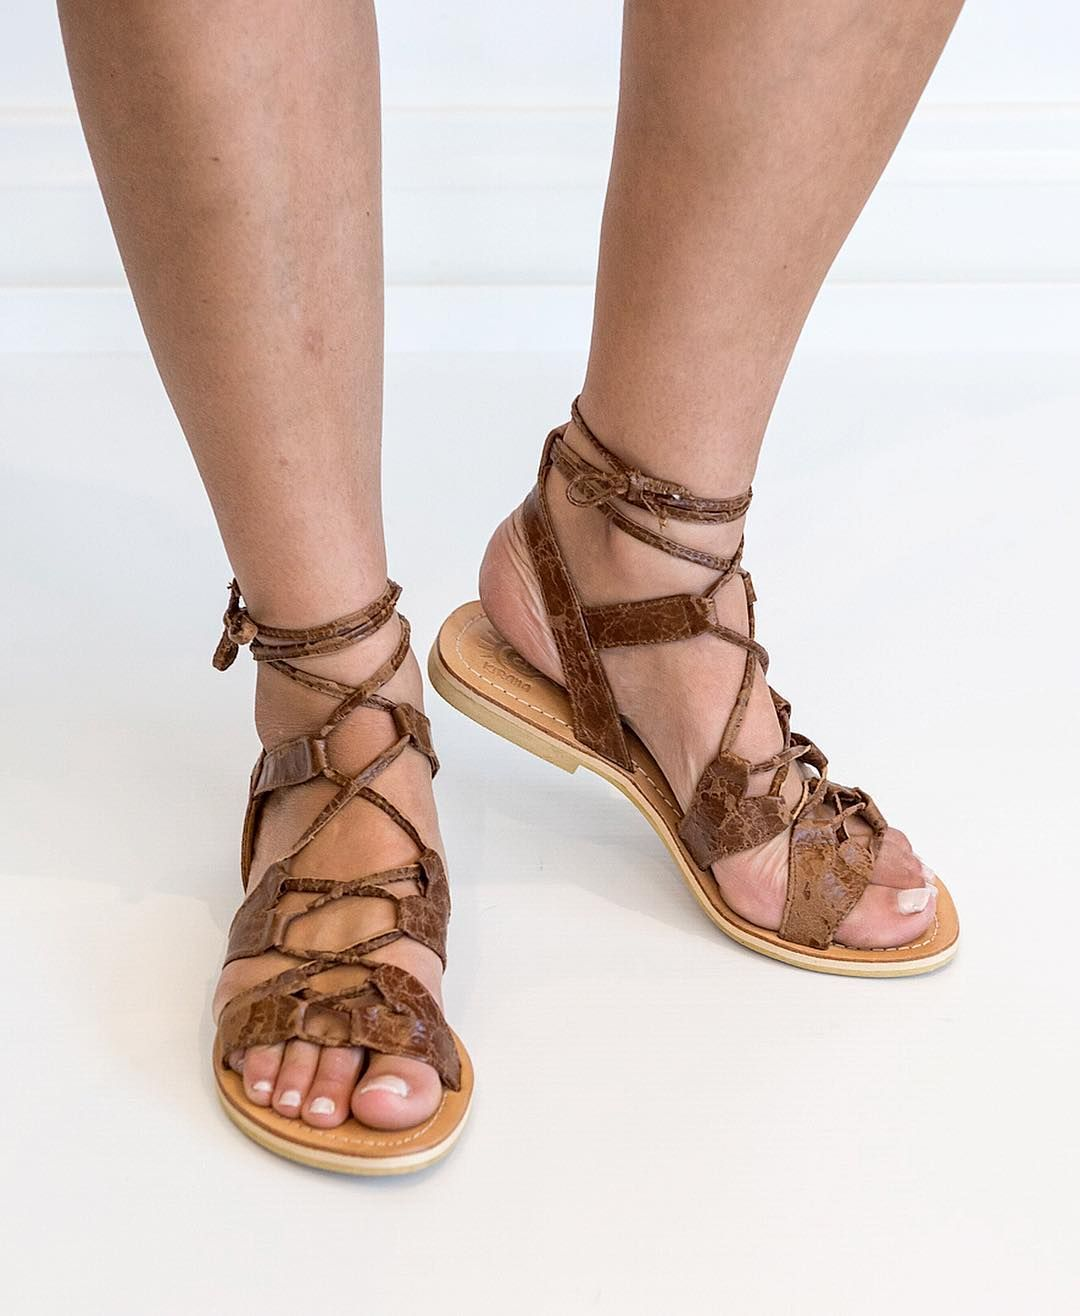 4d01e462d856db NATASHA by Kirana is all about being cruisy   eclectic. That wow factor  sandal to